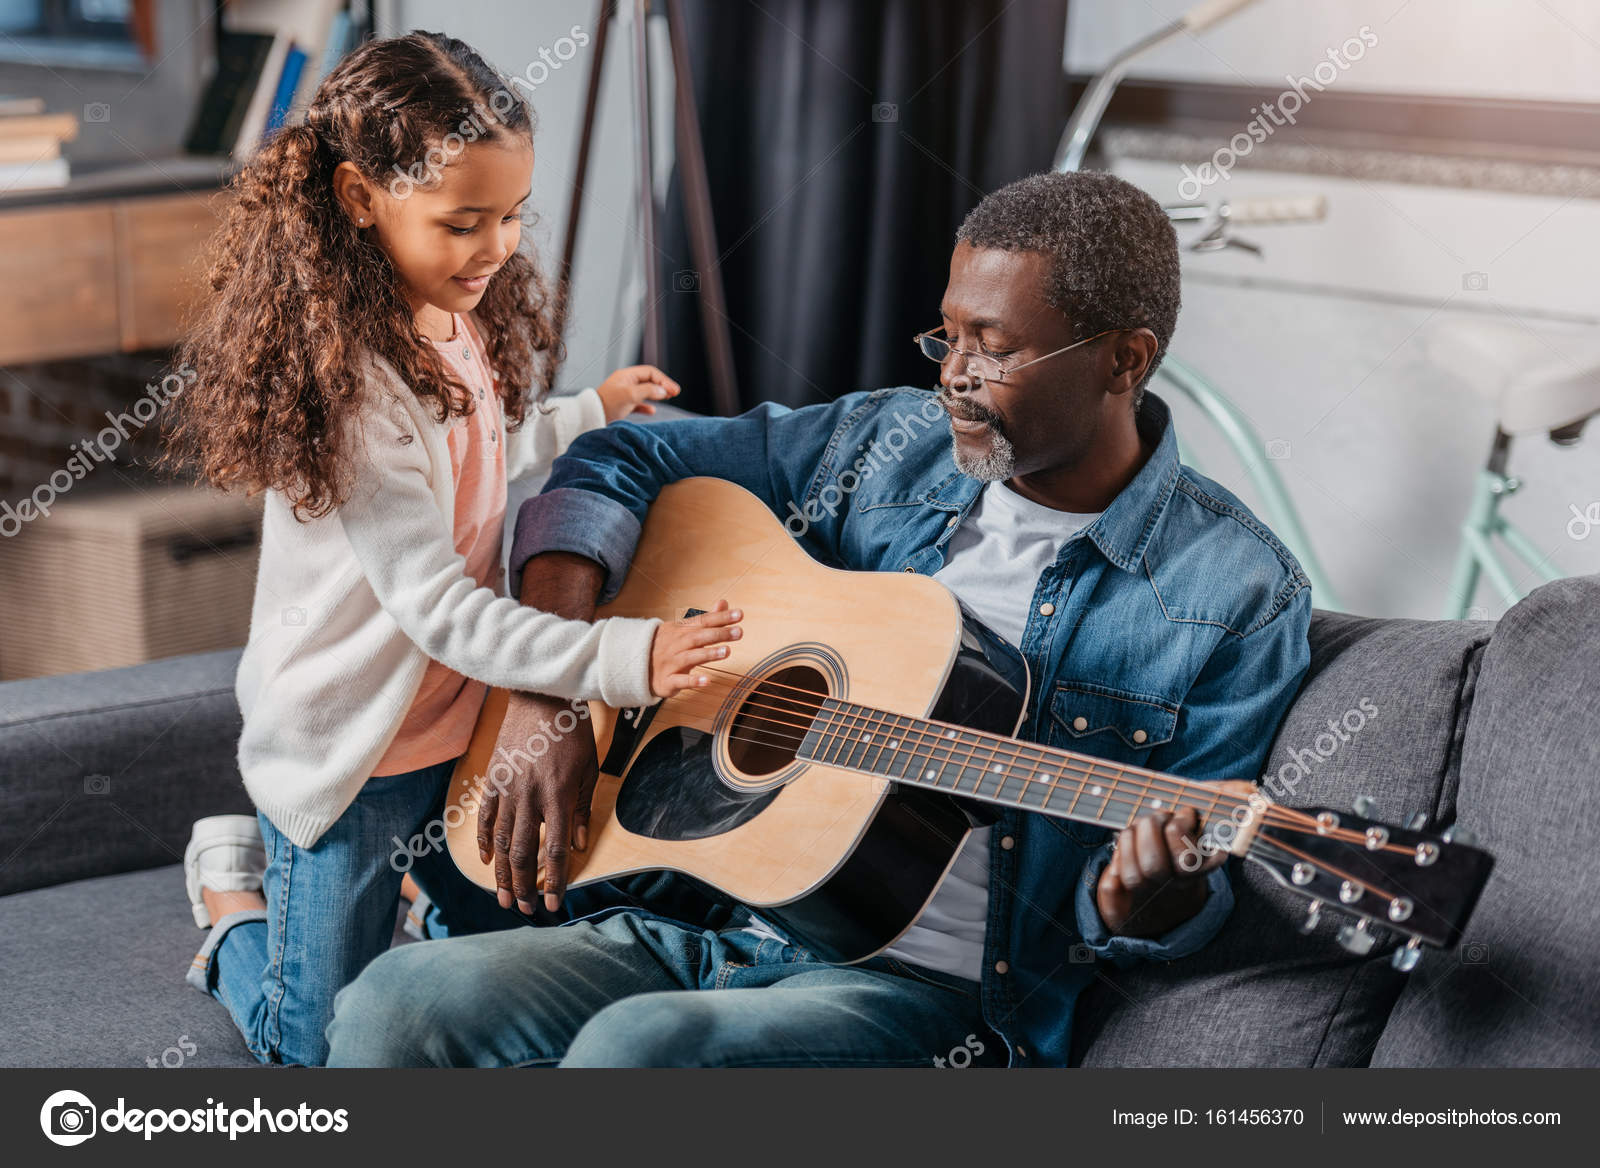 African American Man Playing Guitar With His Cute Daughter Photo By Alebloshka